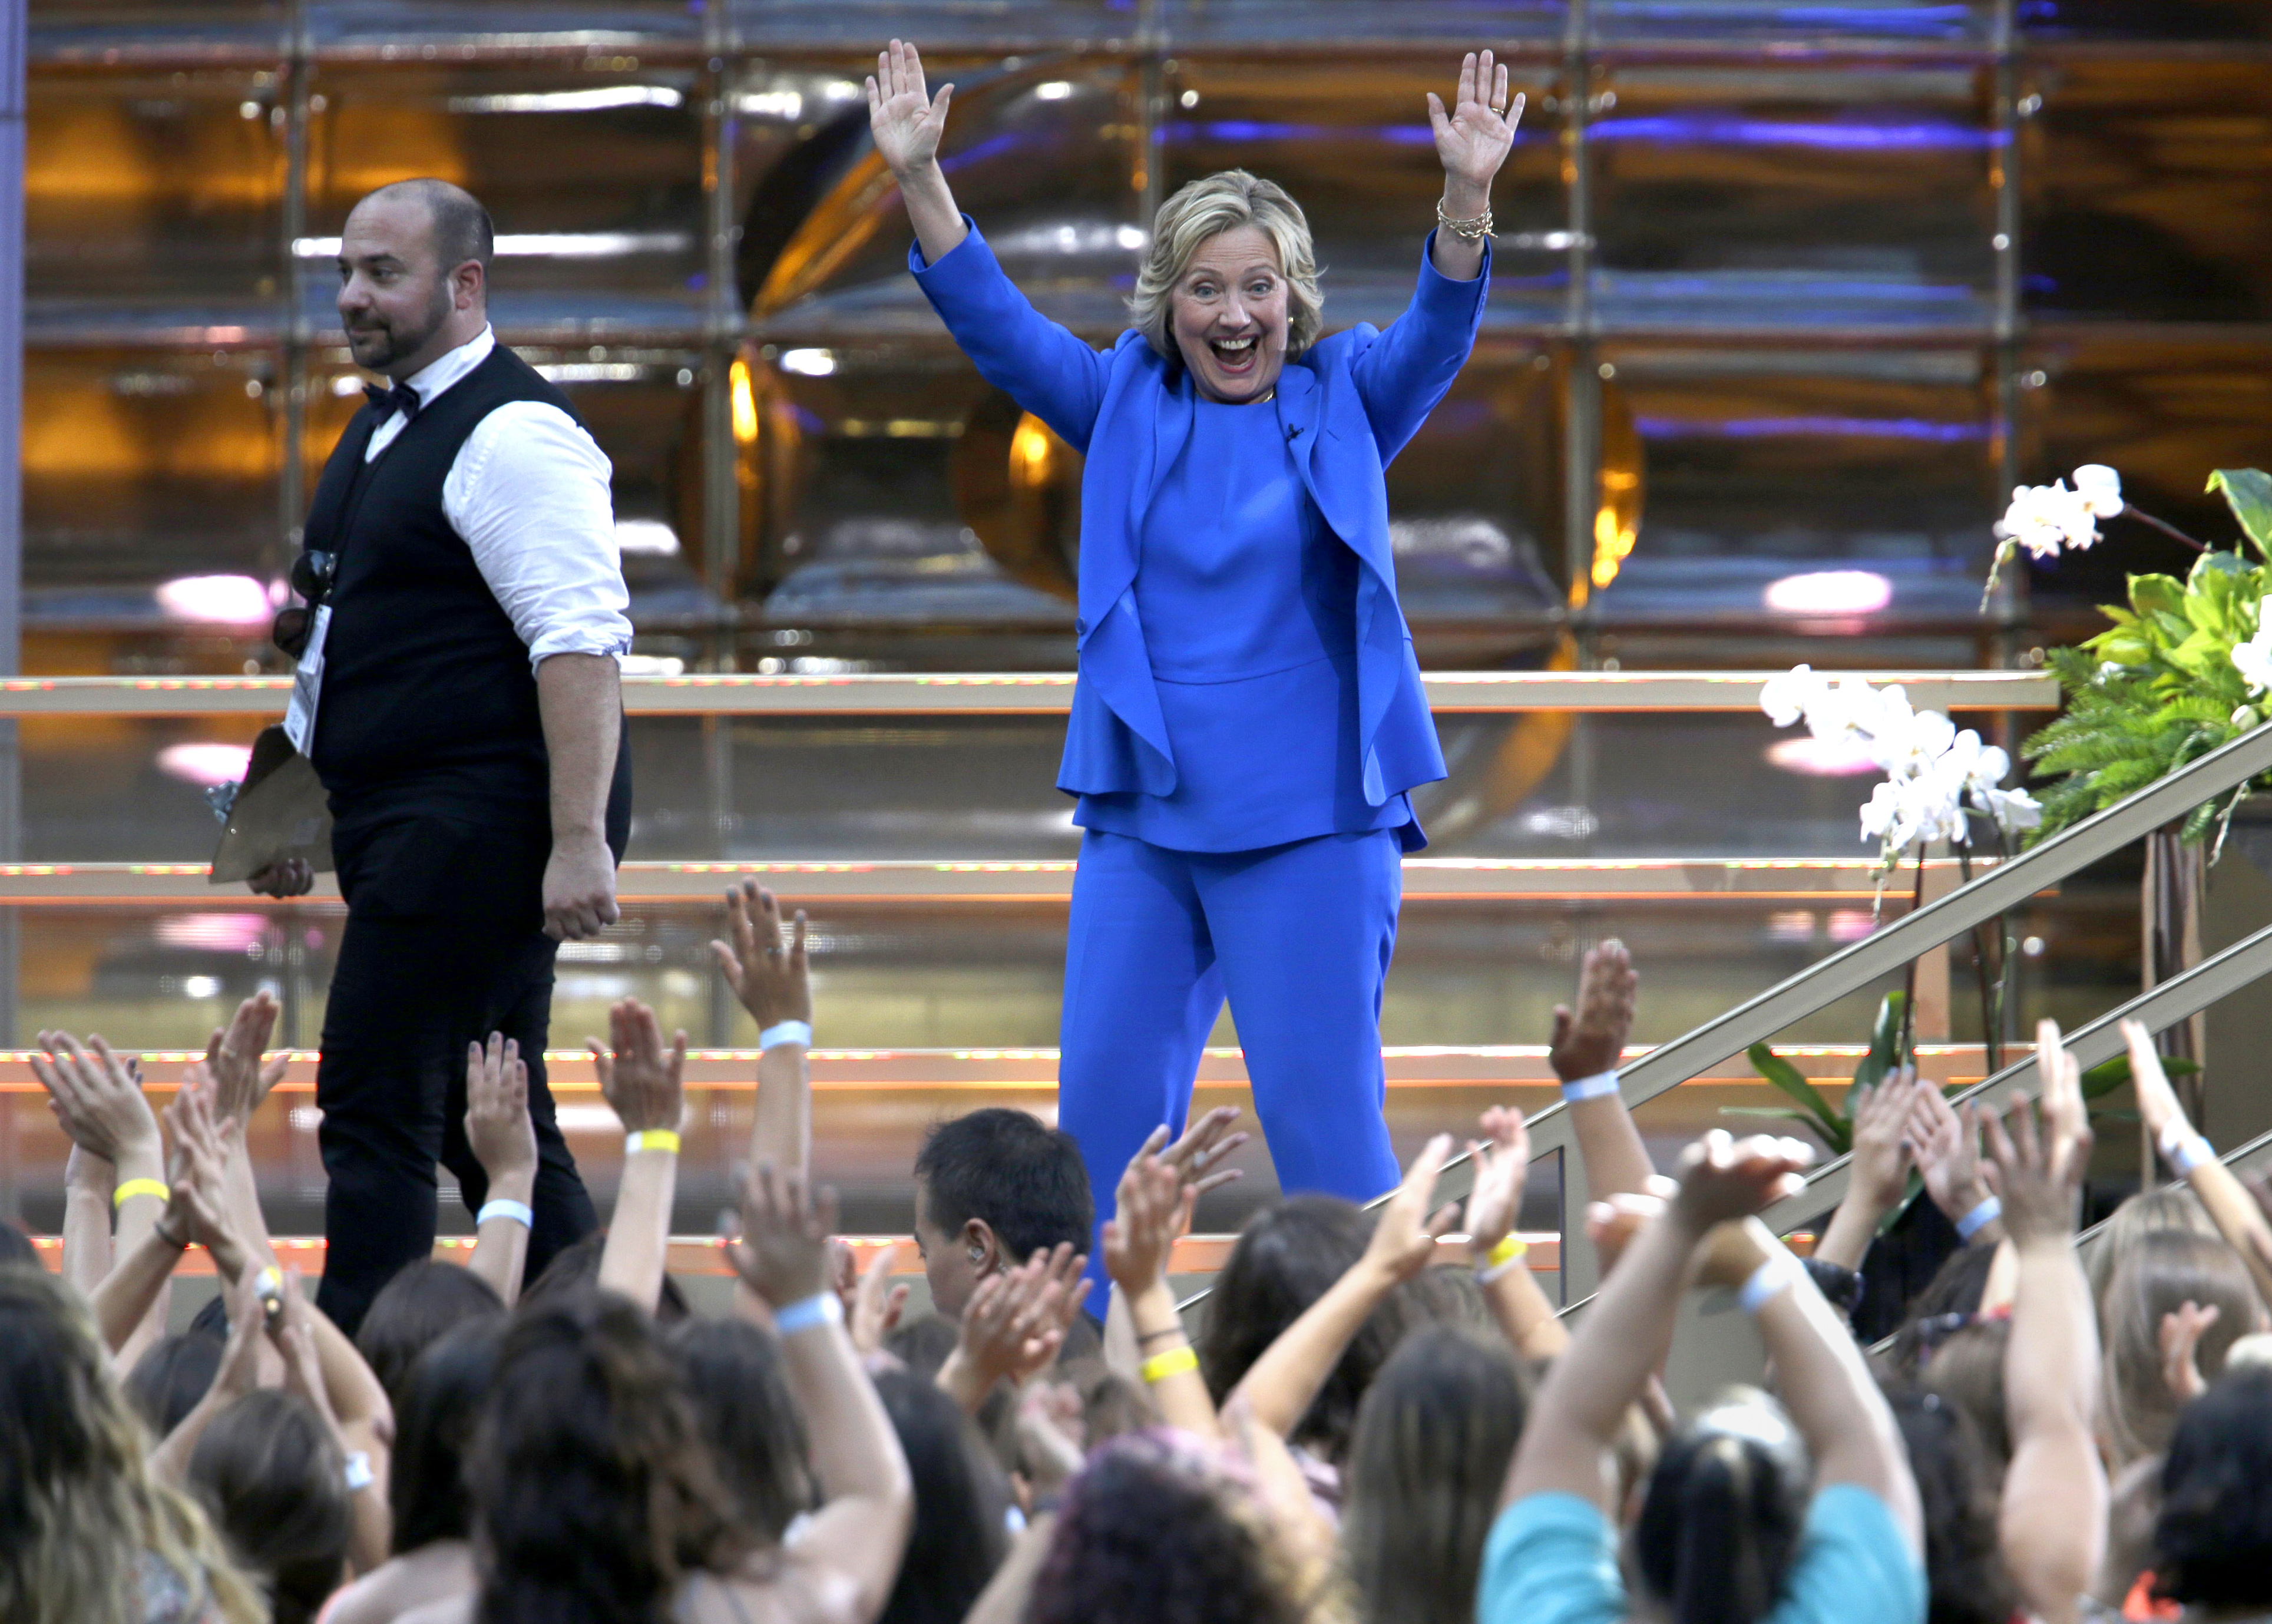 Democratic presidential candidate Hillary Rodham Clinton waves at the audience as she leaves the stage after taping The Ellen DeGeneres Show, Tuesday, Sept. 8, 2015, at Rockefeller Center in New York. Photo: AP